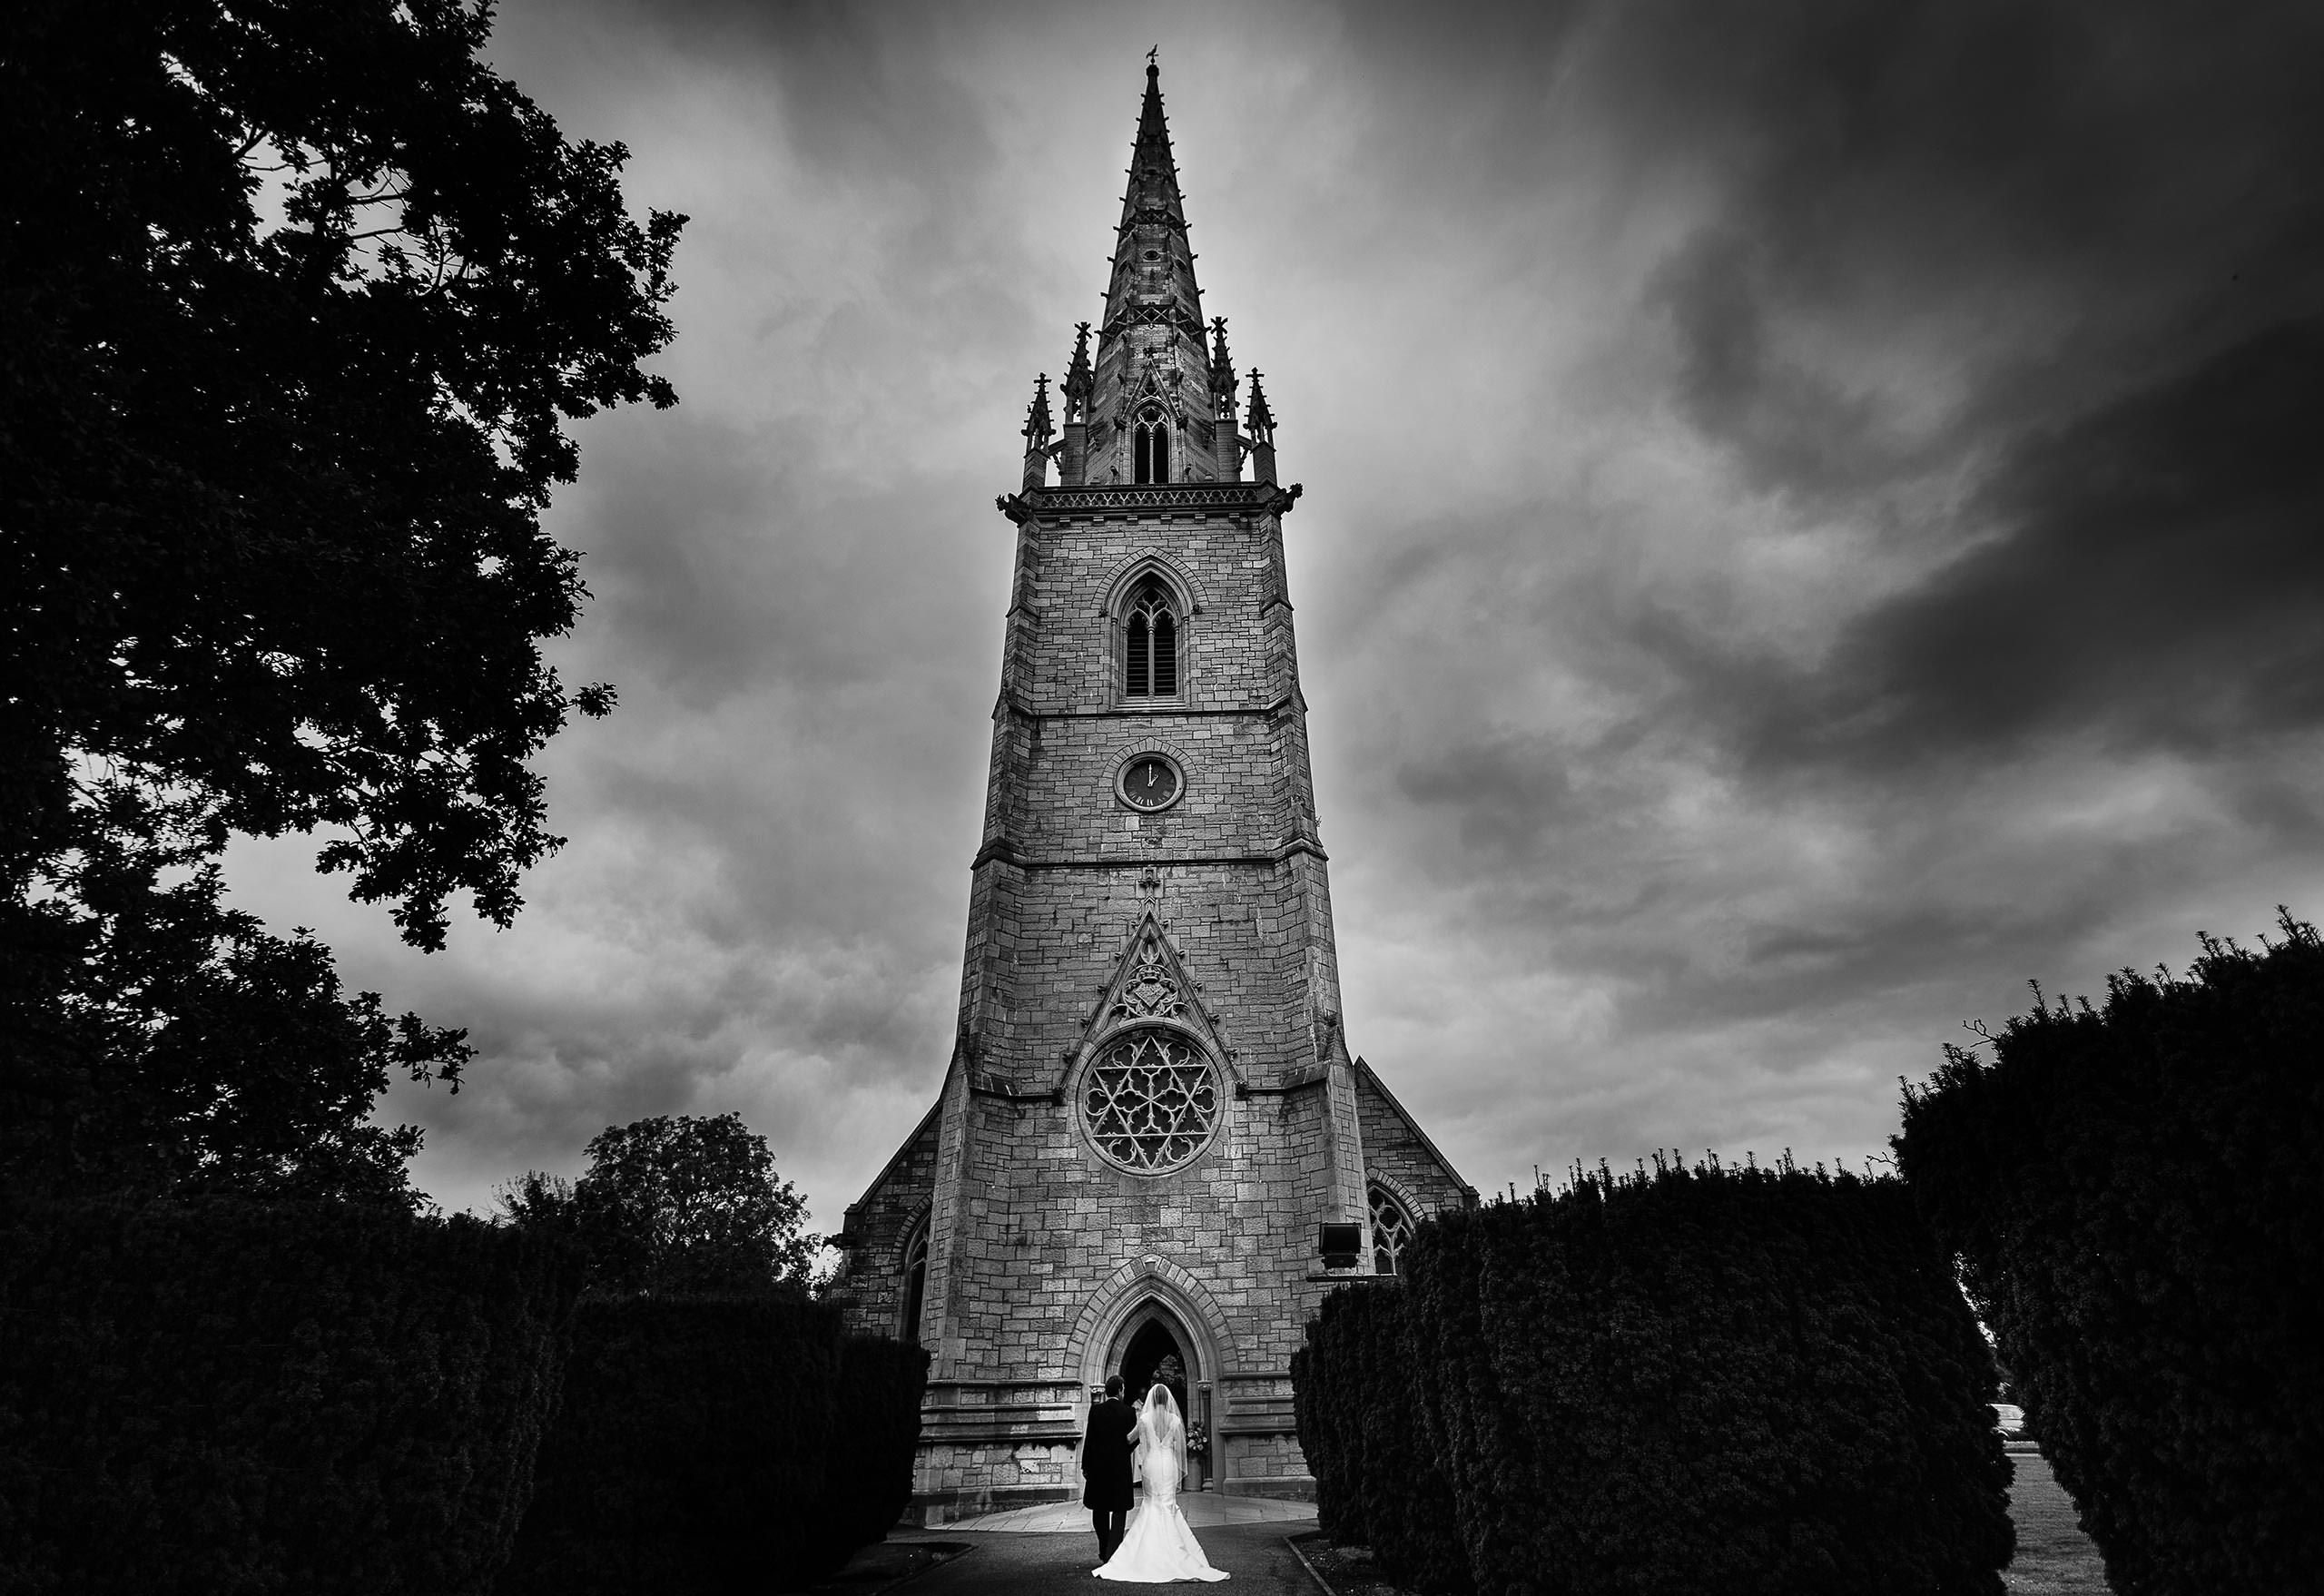 the bride and her Father arrive at the amazing Marble Church in North Wales captured by Shropshire documentary wedding photographer Phil Barrett